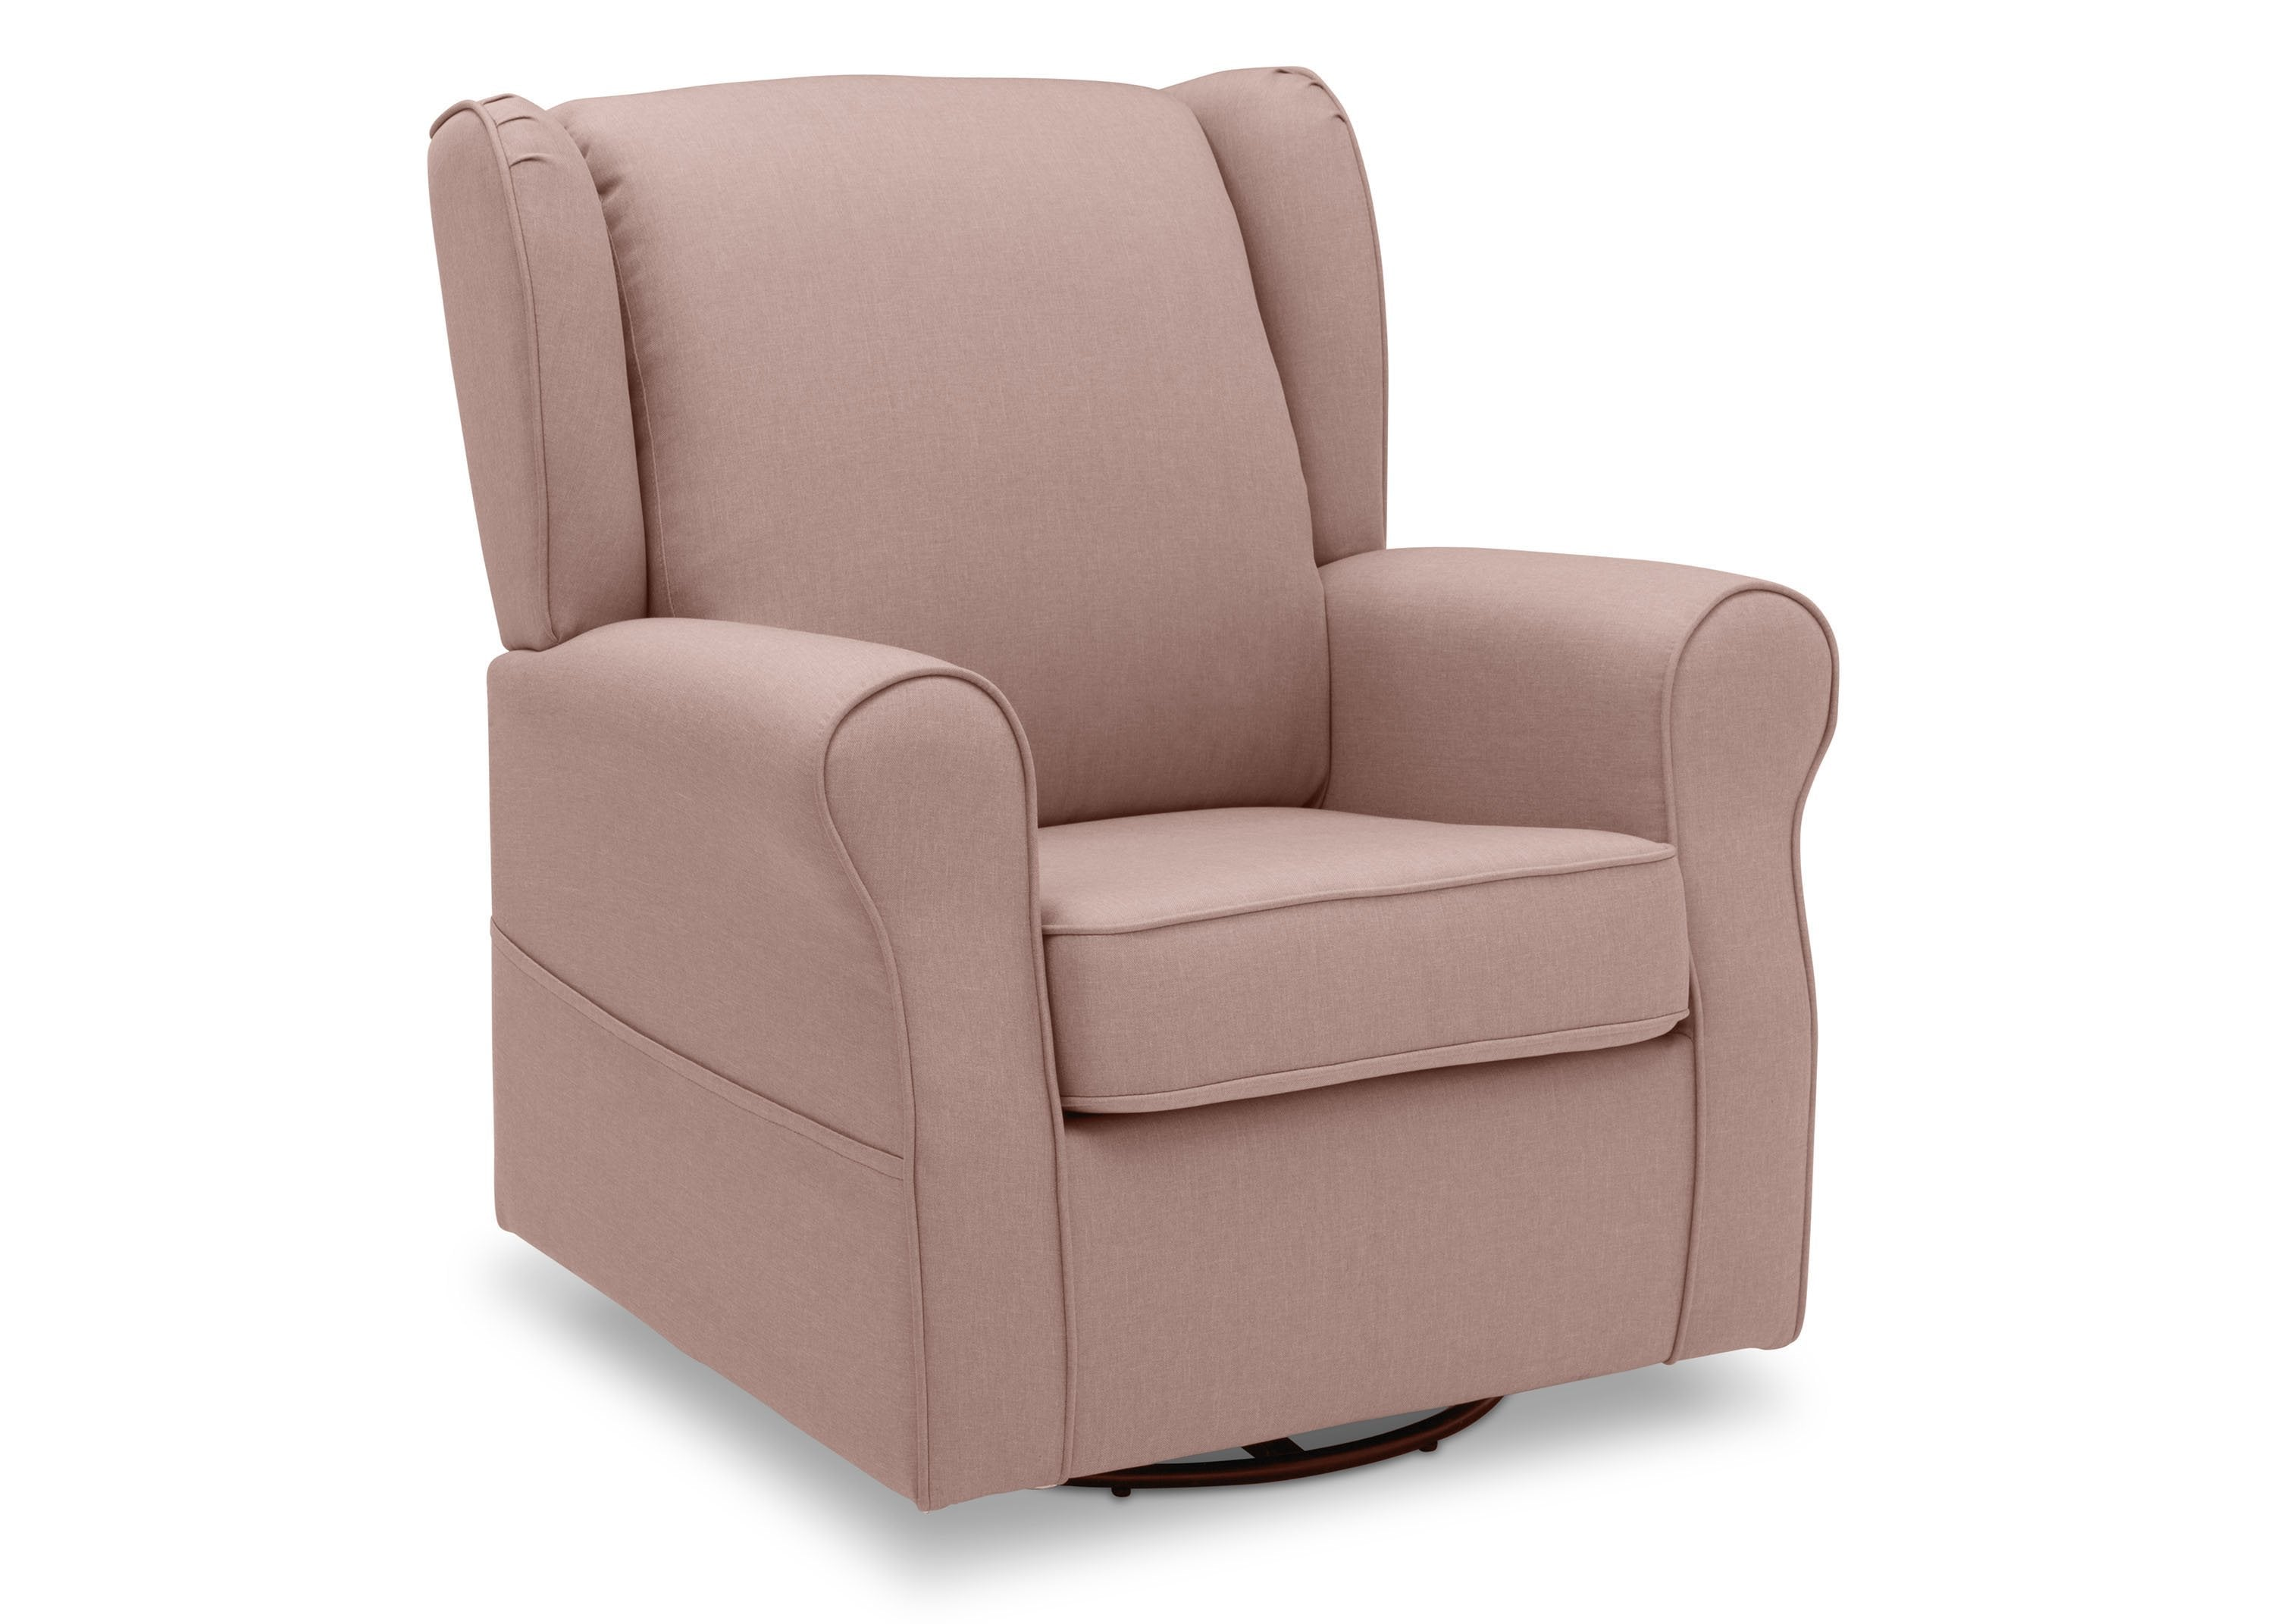 Beau ... Delta Children Blush (636) Reston Nursery Glider Swivel Rocker Chair  (W512310), ...